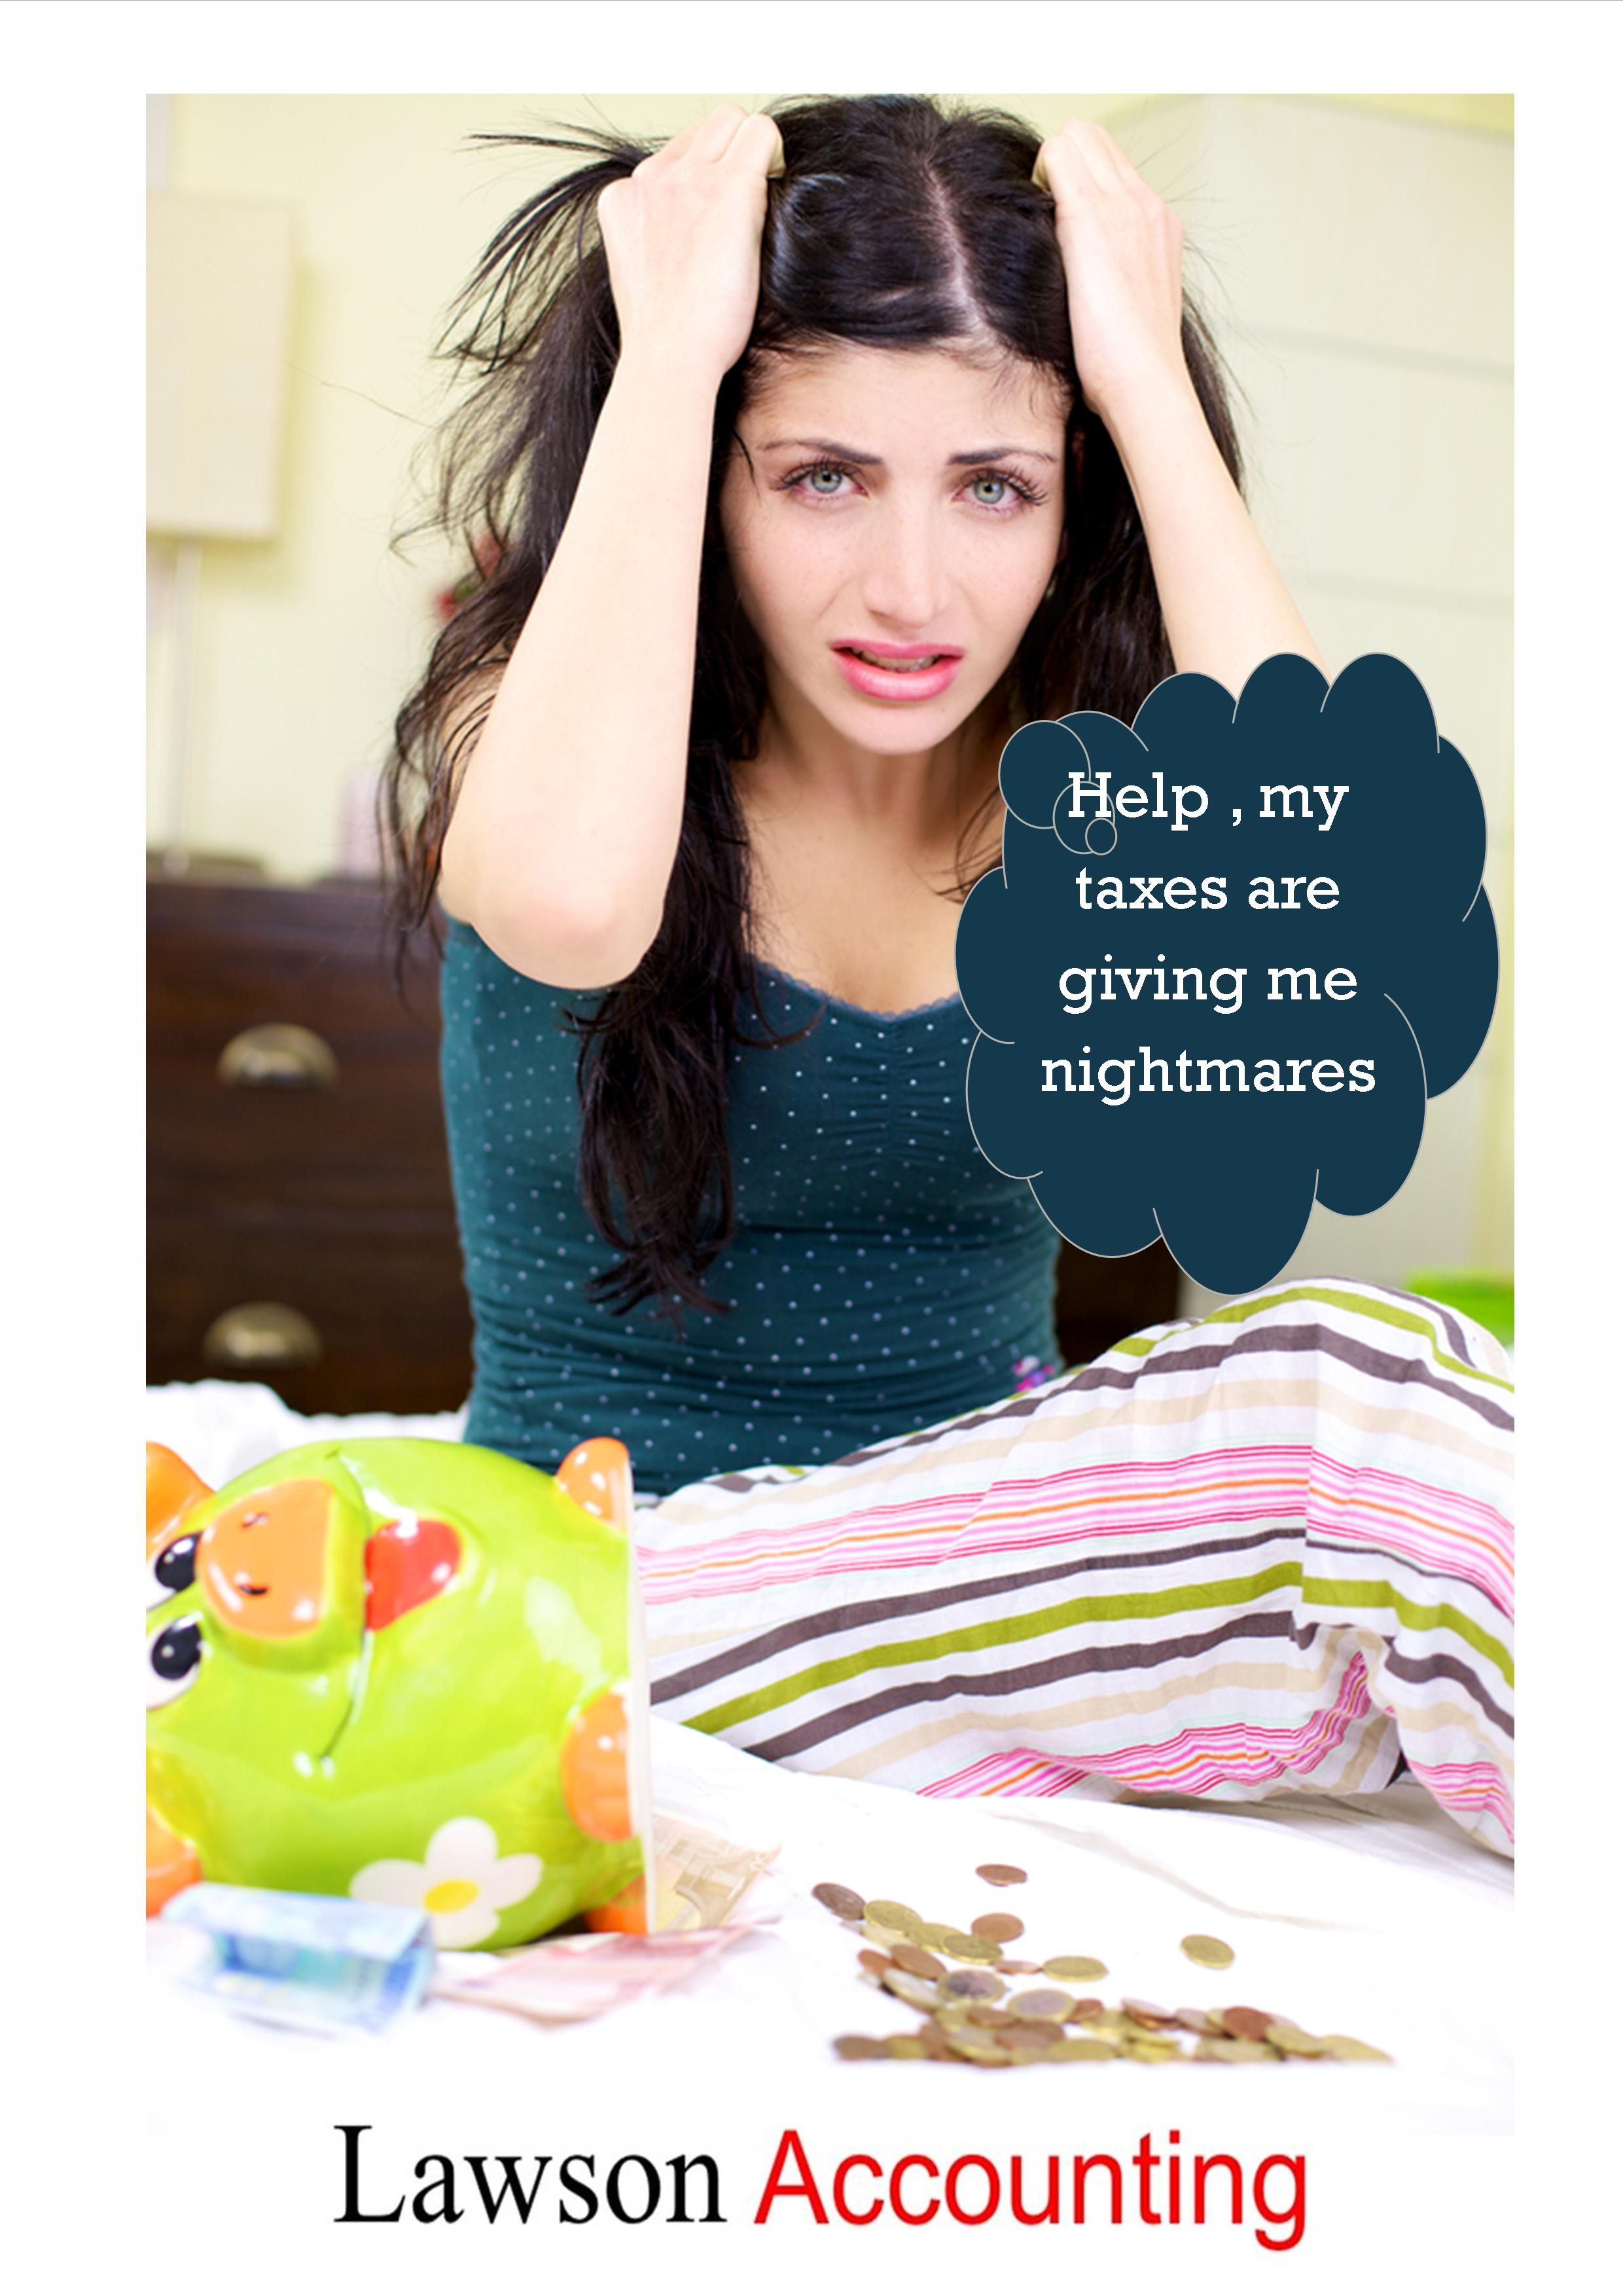 Help my taxes are giving me nightmares